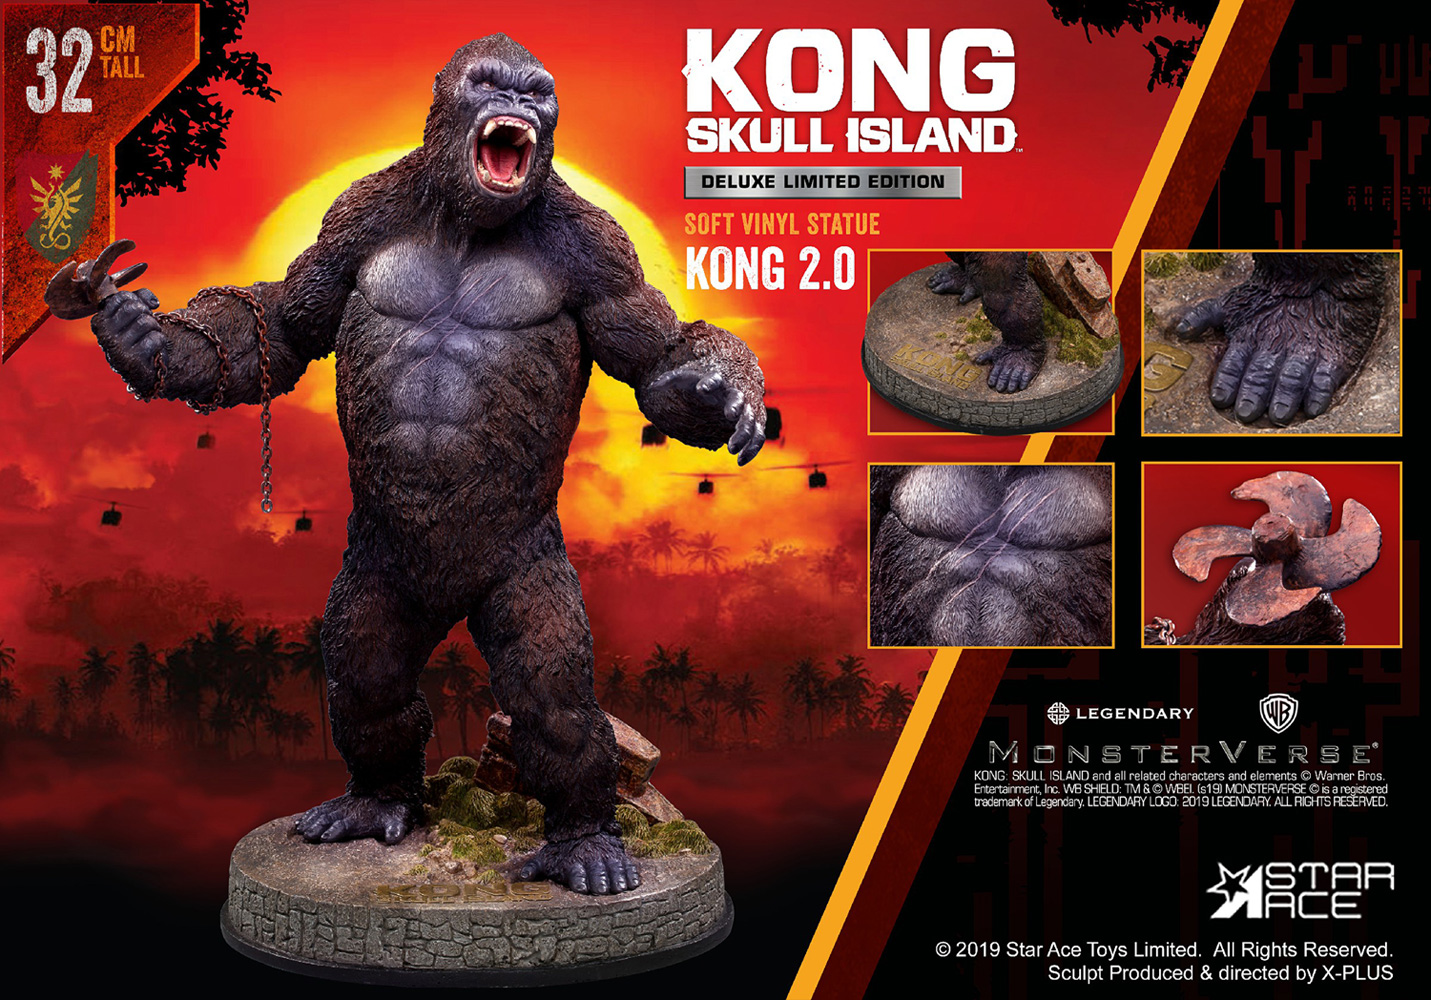 Kong Skull Island Soft Vinyl Statue: Kong 2.0  (deluxe version) - Star Ace Toys Limited